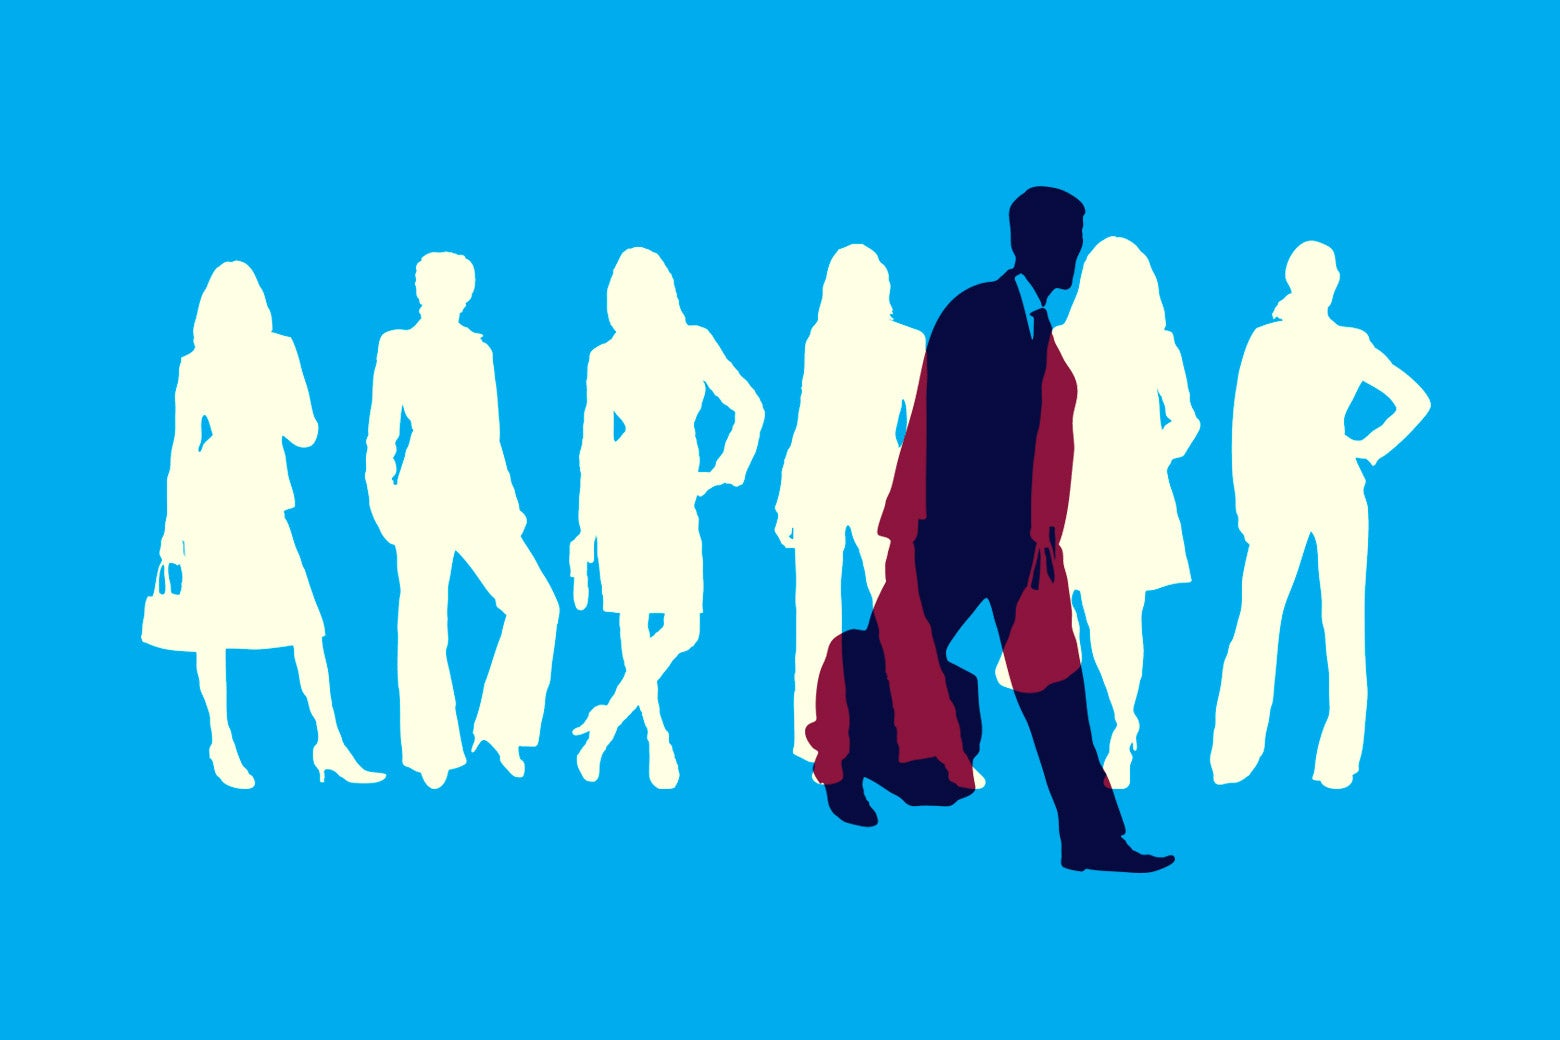 Photo illustration: Women in business suit silhouettes, and the silhouette of a man in a suit walking away with briefcase in hand.